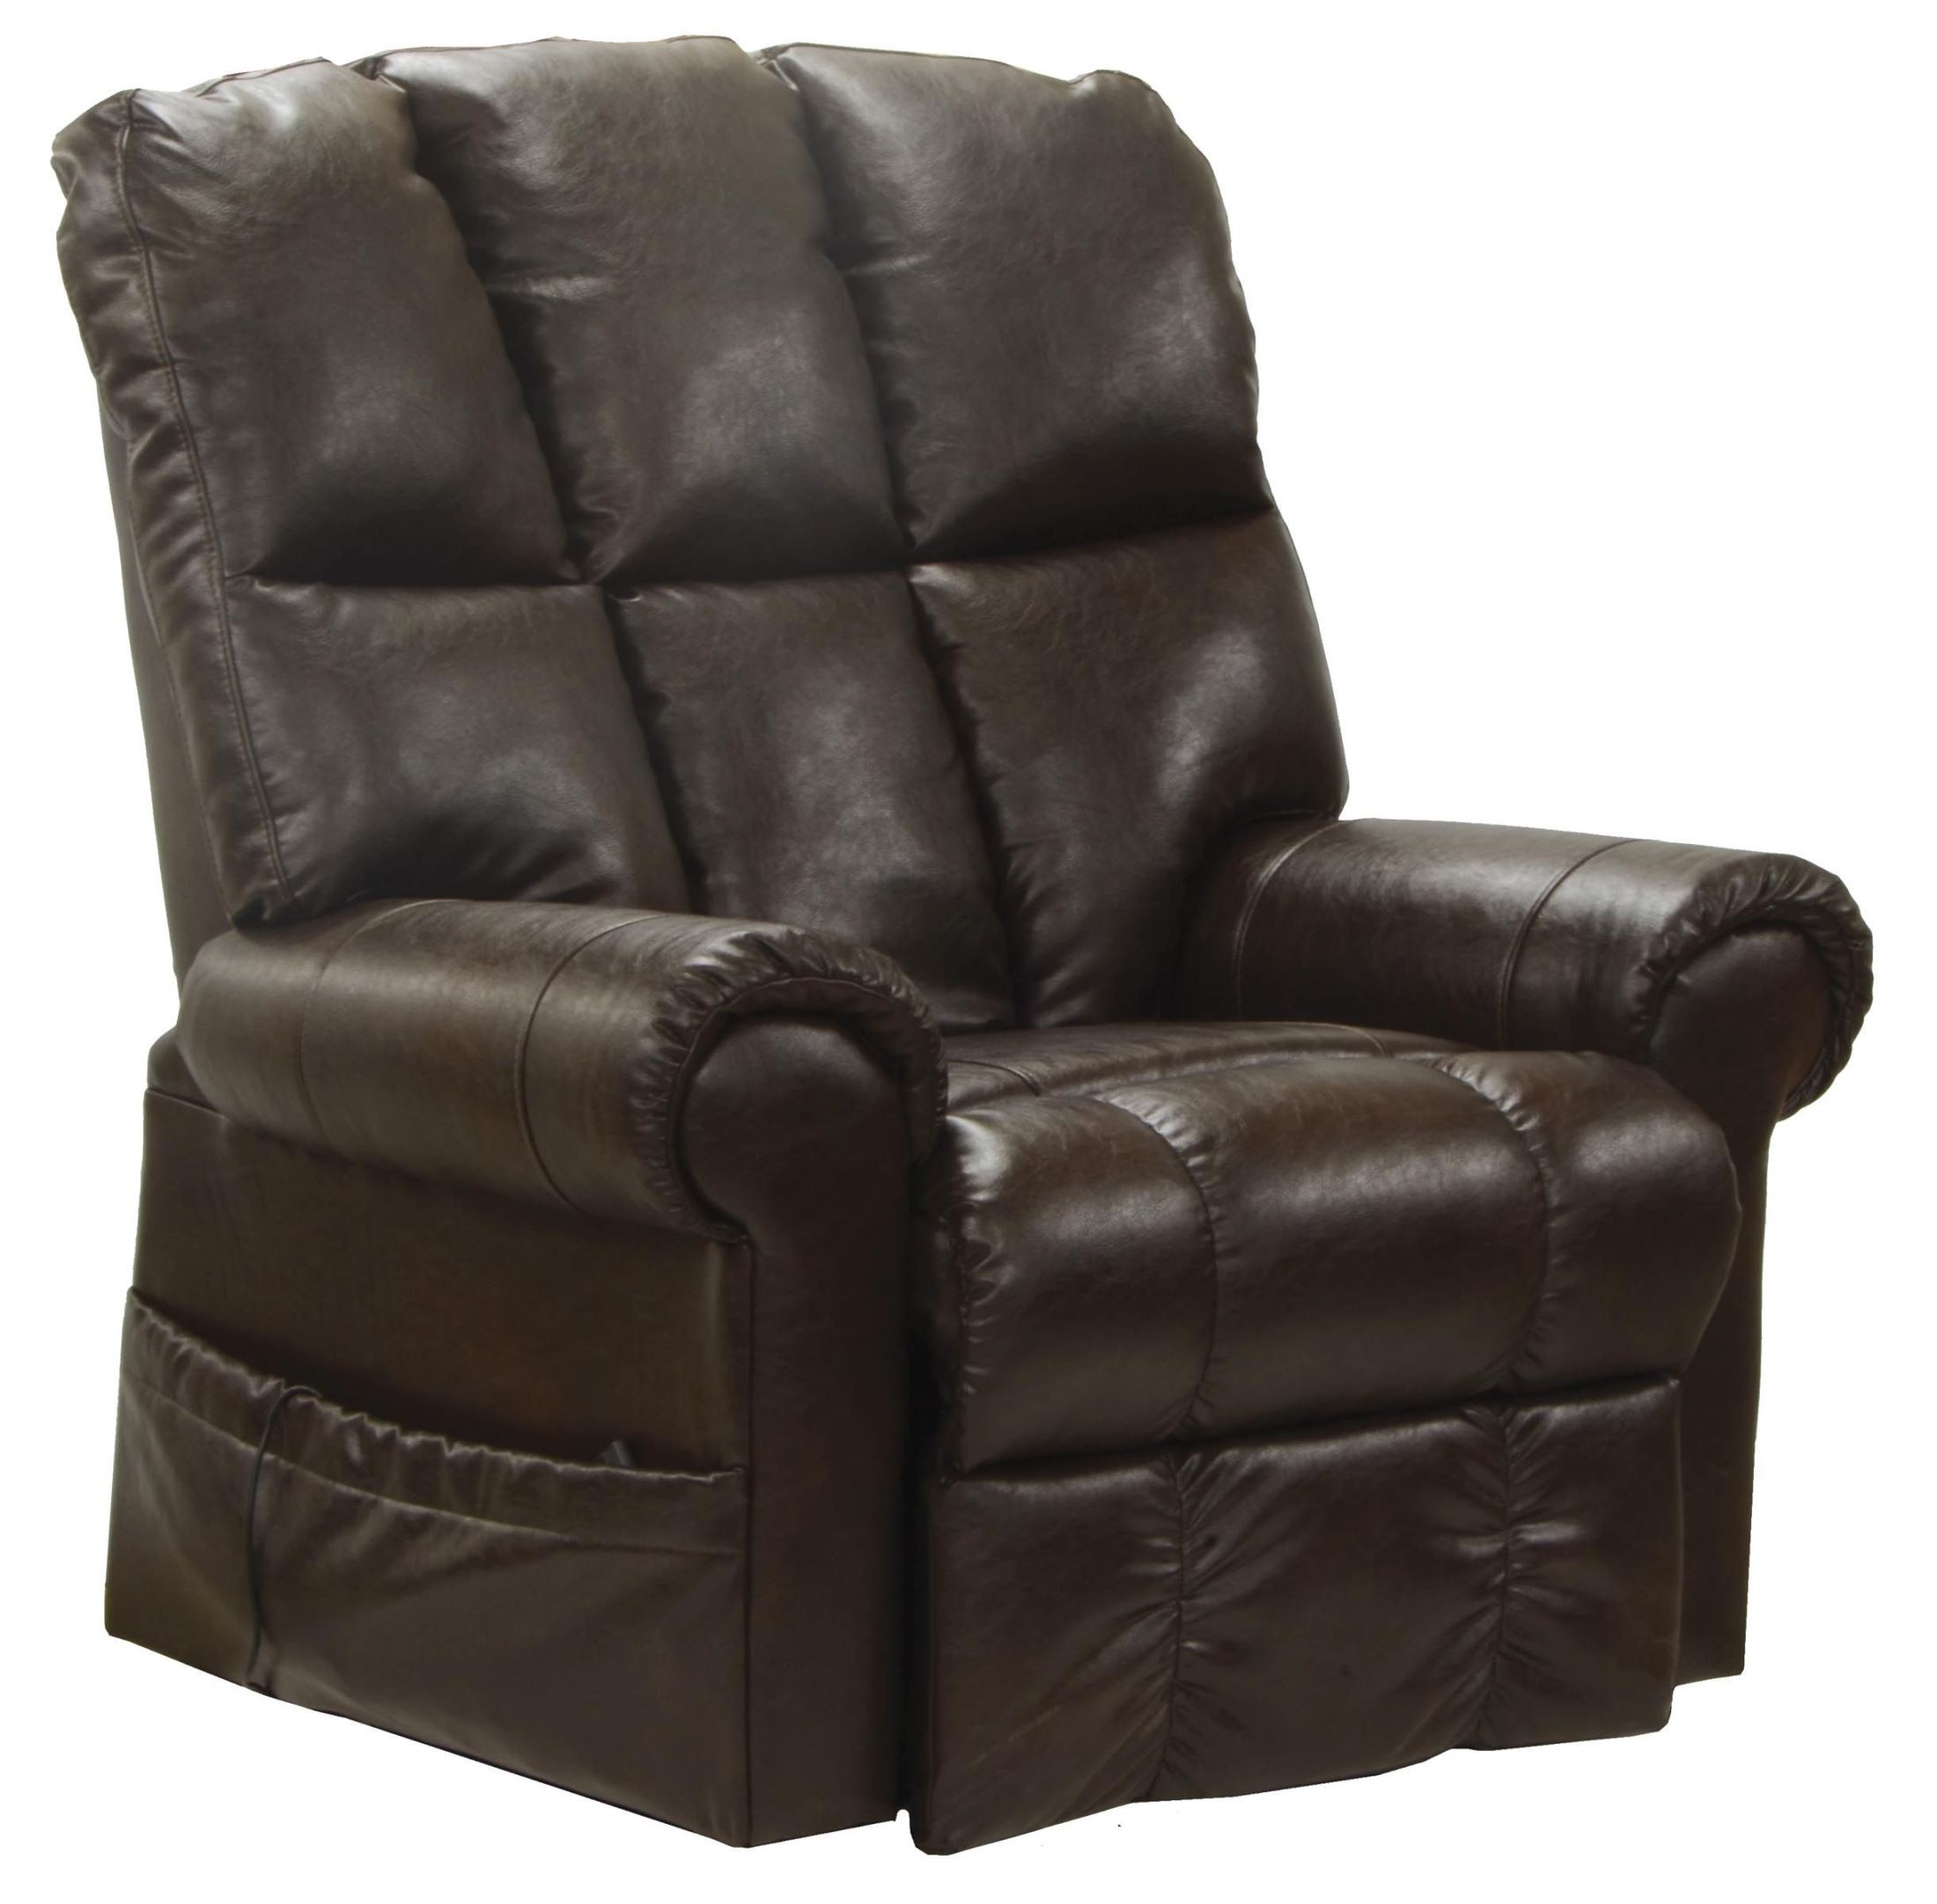 Stallworth godiva bonded leather power lift recliner from for Catnapper cloud nine chaise recliner